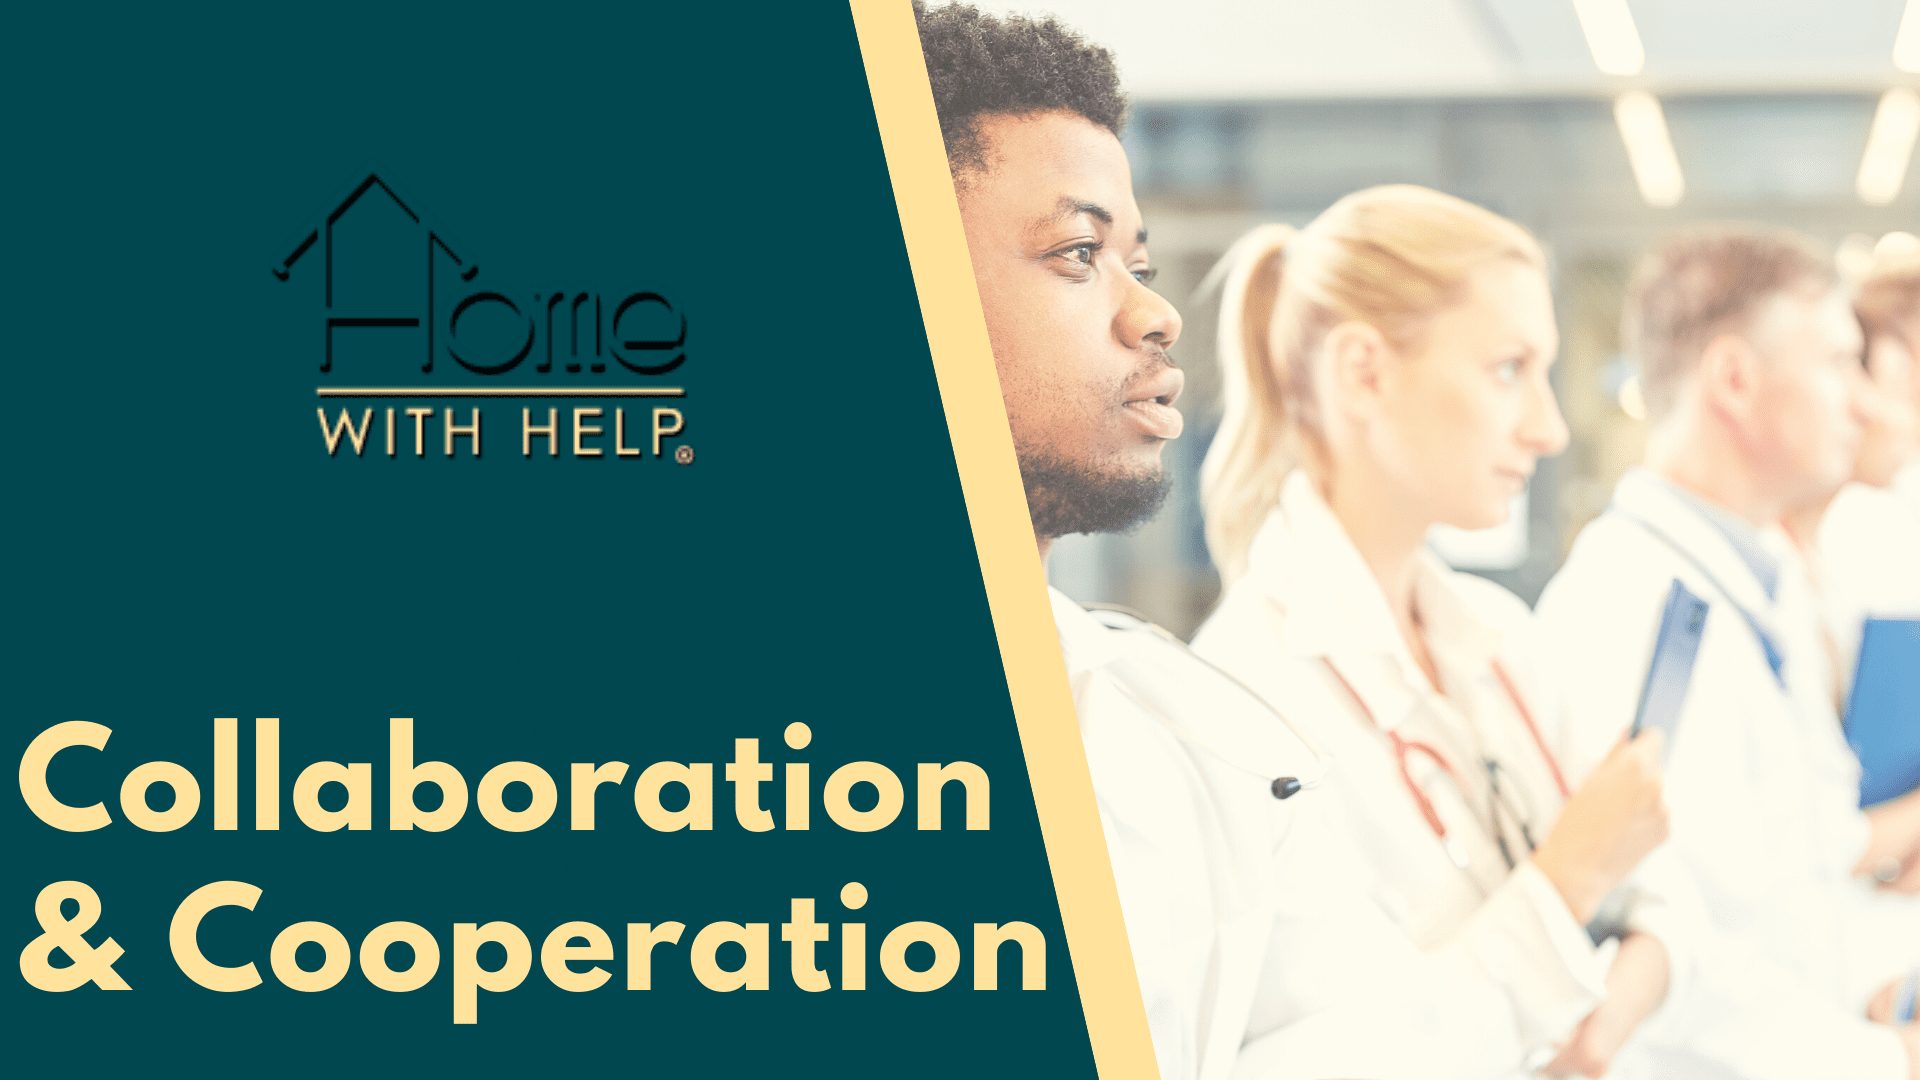 collaboration and cooperation in healthcare industry